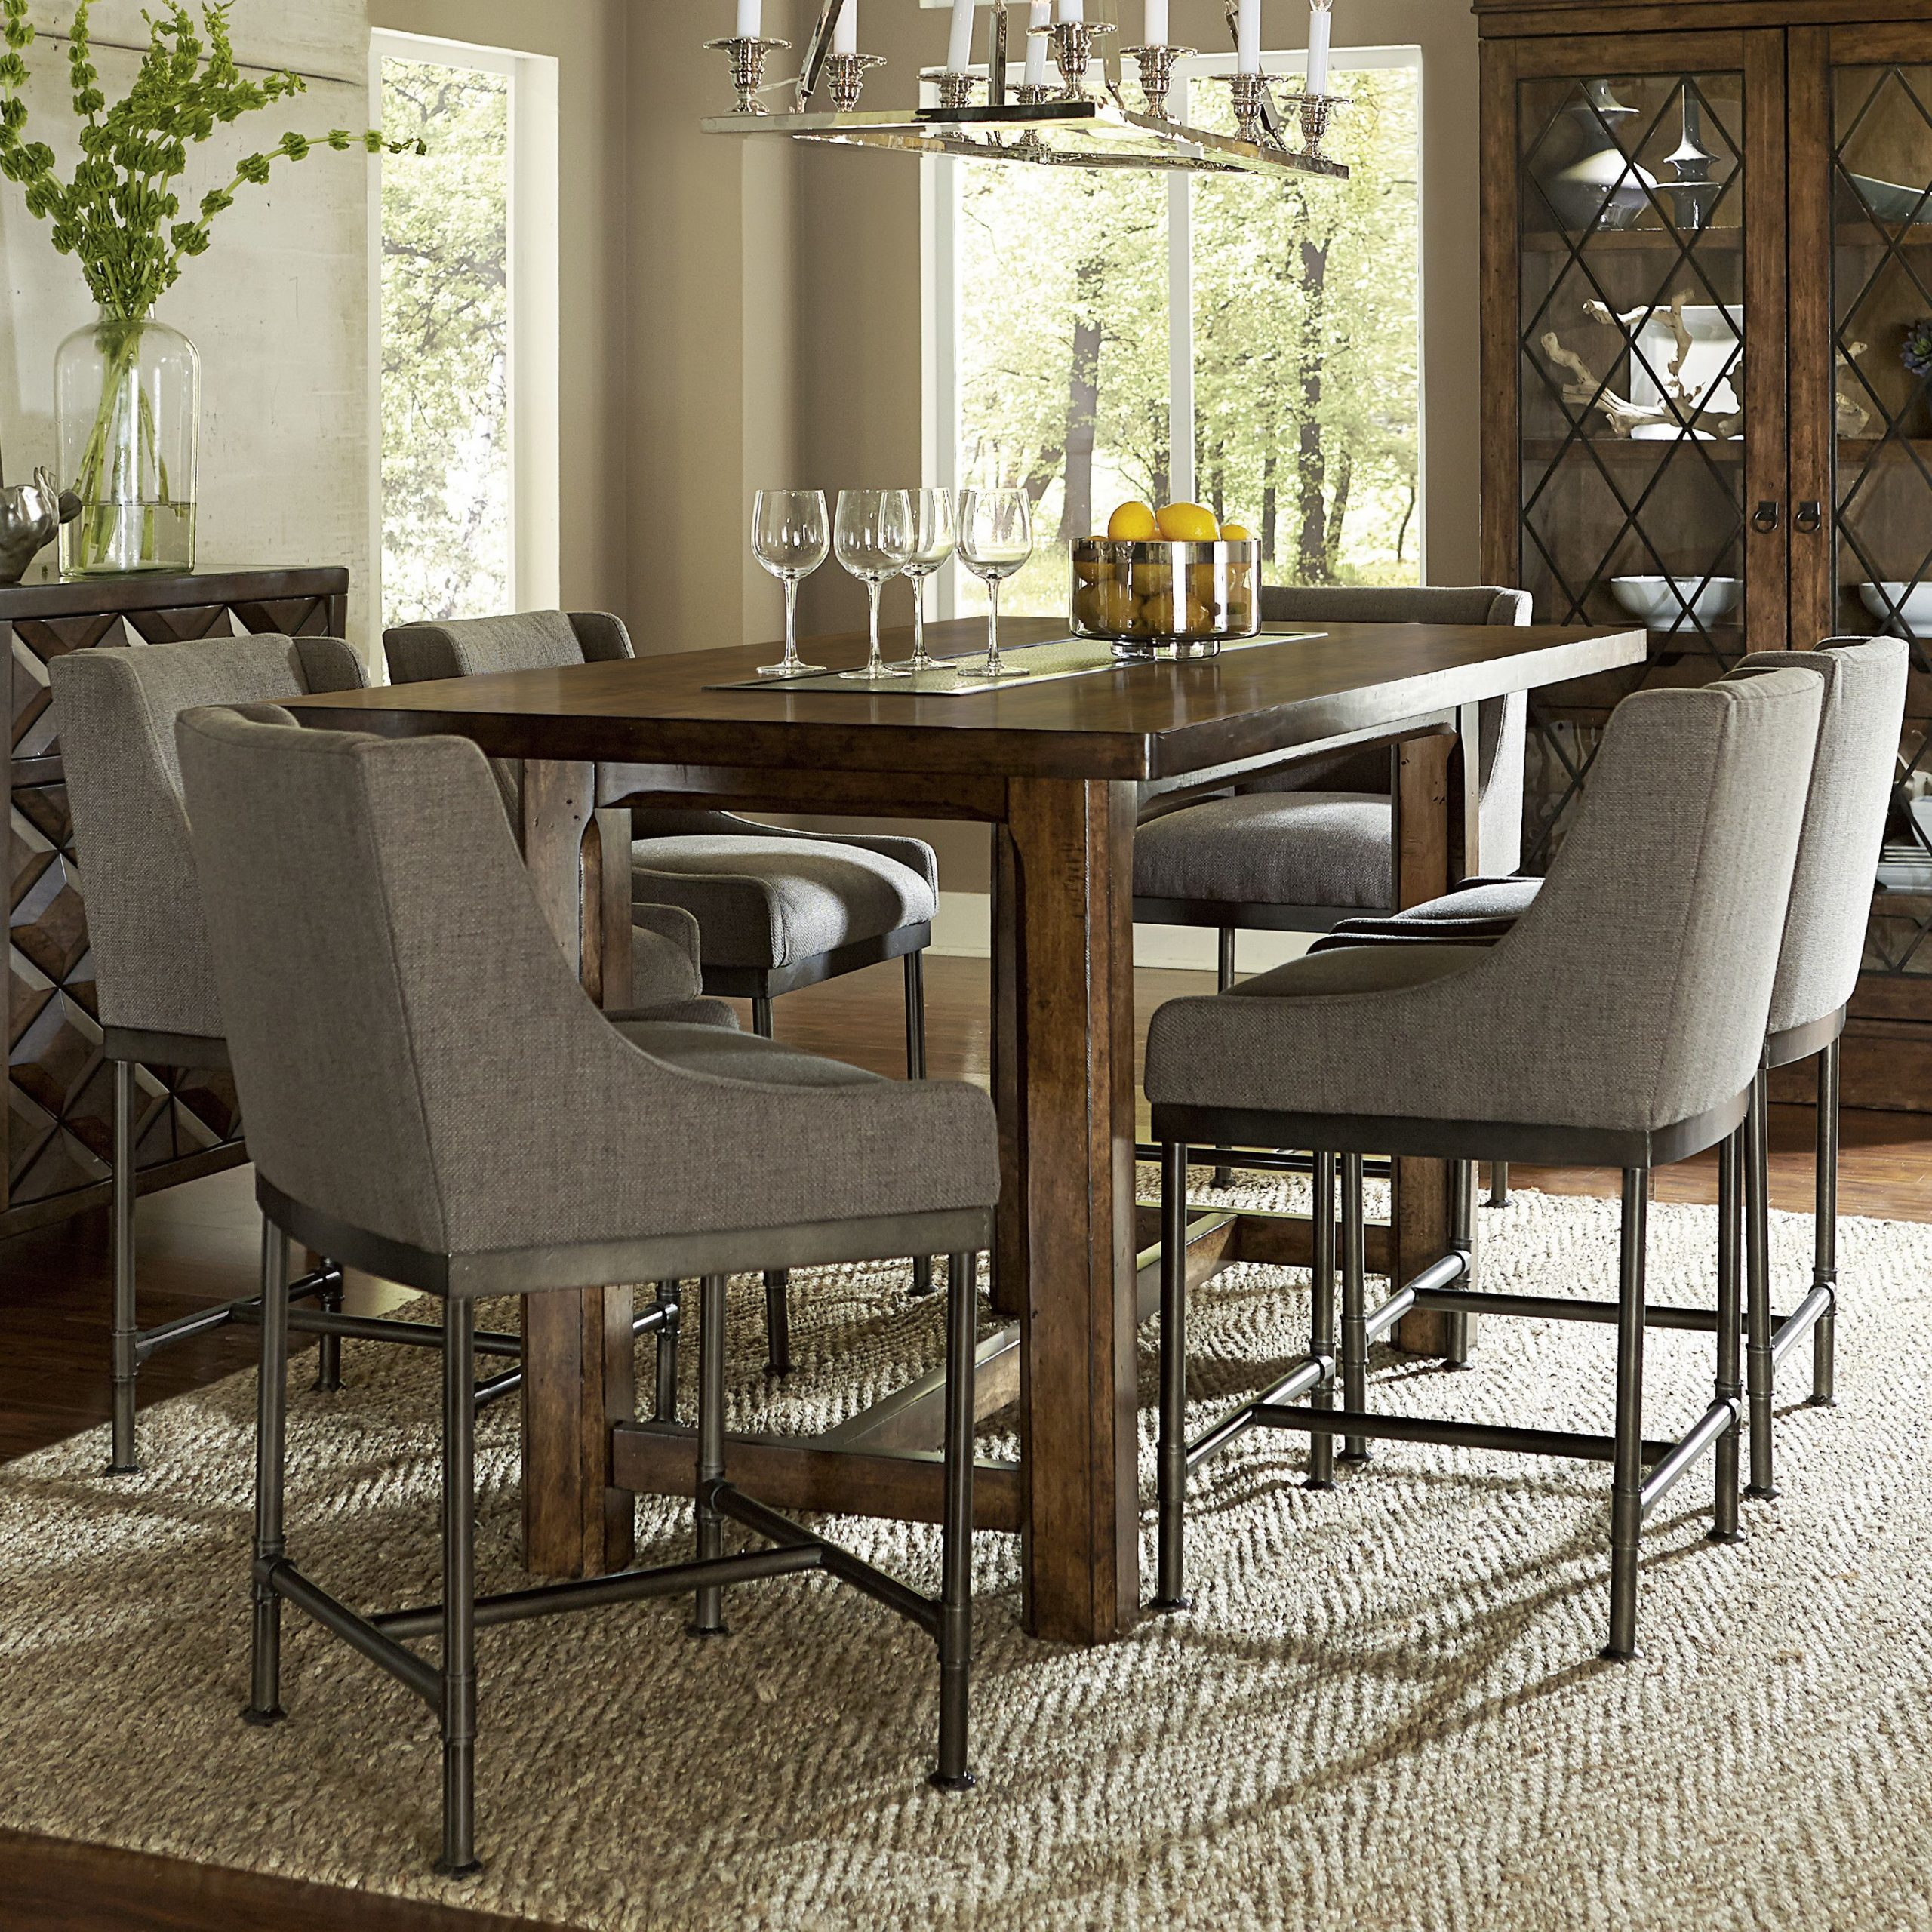 Loon Peak Segula Counter Height Dining Table | Dining Area With Regard To Most Recent Avondale Counter Height Dining Tables (View 3 of 25)